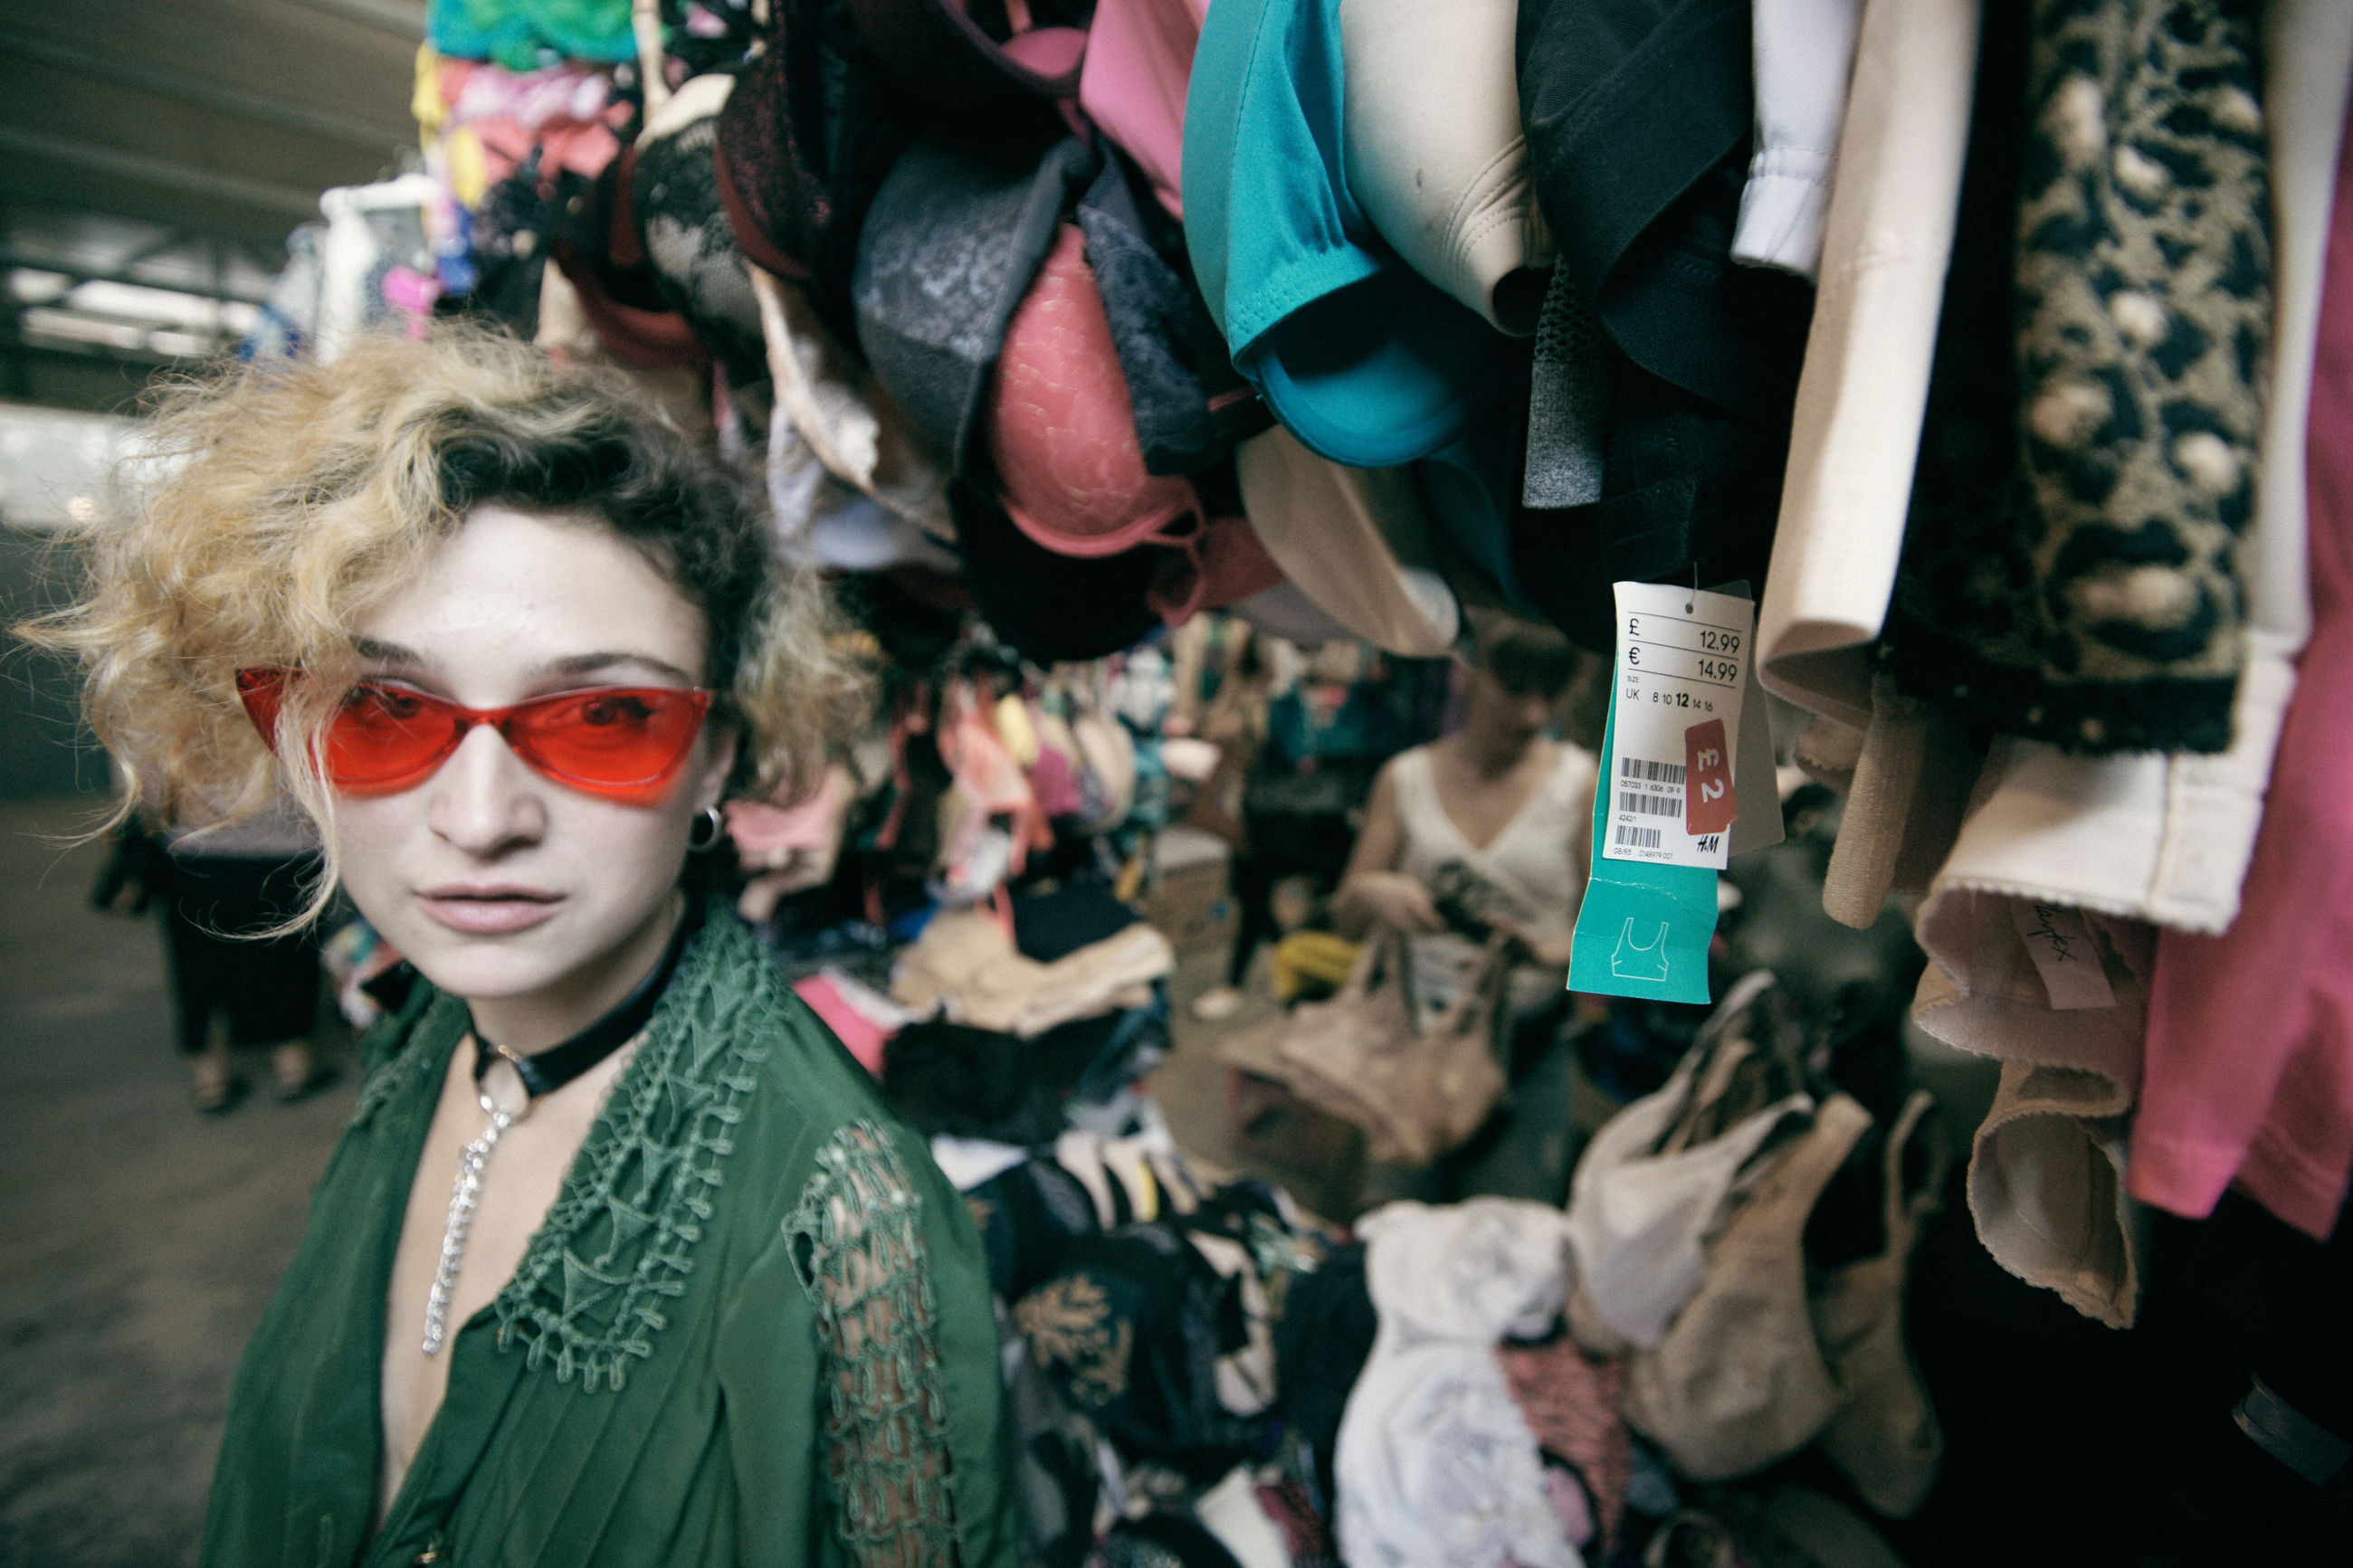 fashion, real people, glasses, retail, women, portrait, sunglasses, people, indoors, group of people, lifestyles, for sale, incidental people, human representation, clothing, choice, mannequin, variation, adult, focus on foreground, retail display